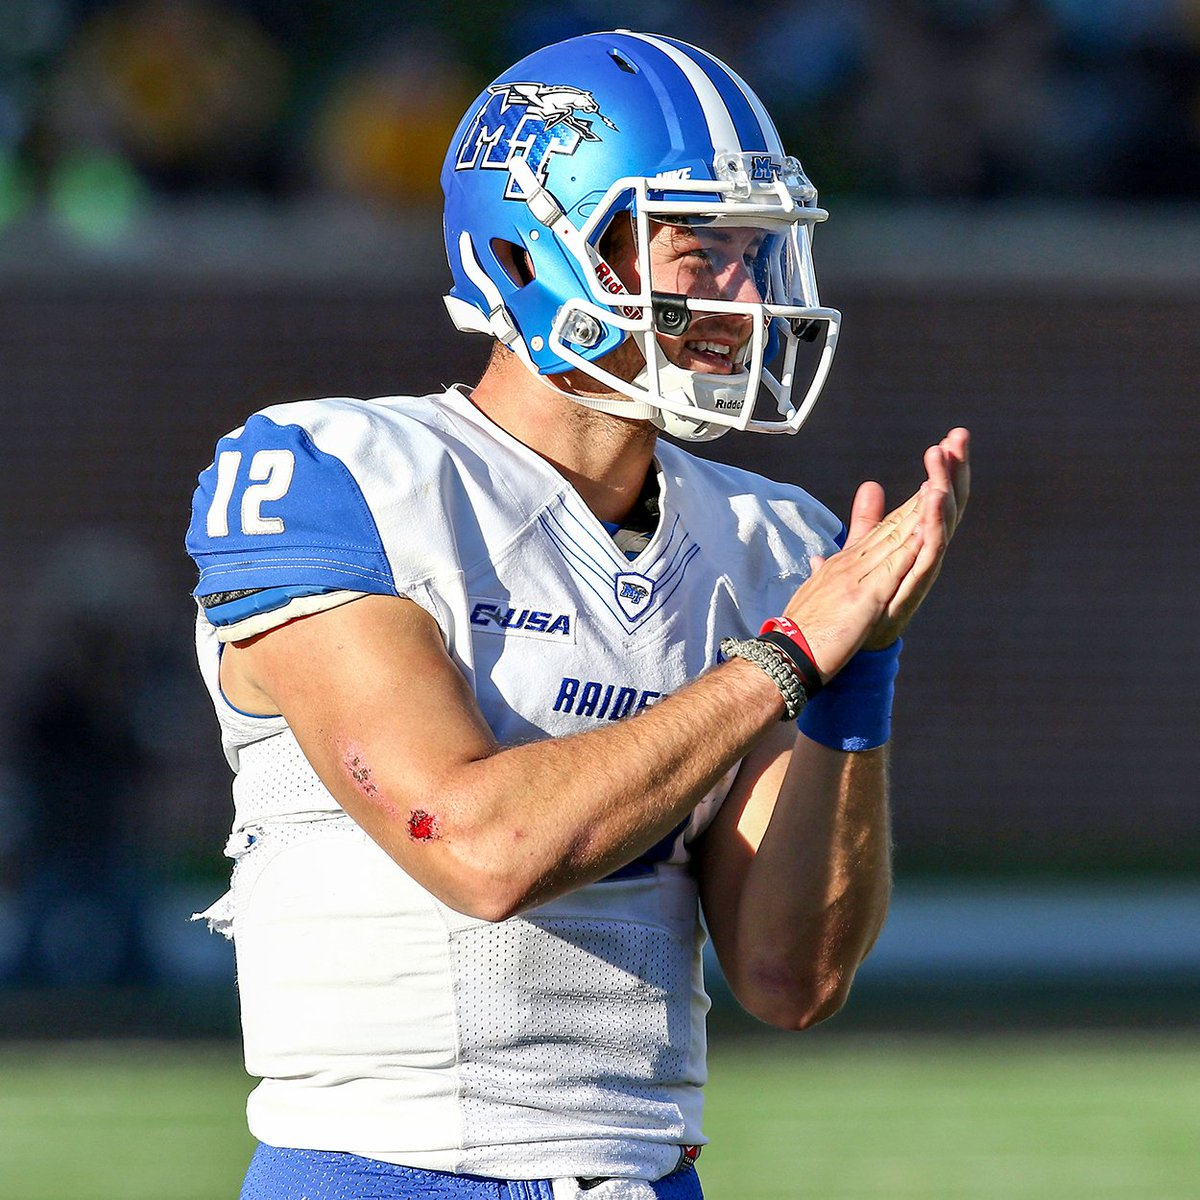 BREAKING: Brent Stockstill has officially been cleared and will play in the @HawaiiBowl.